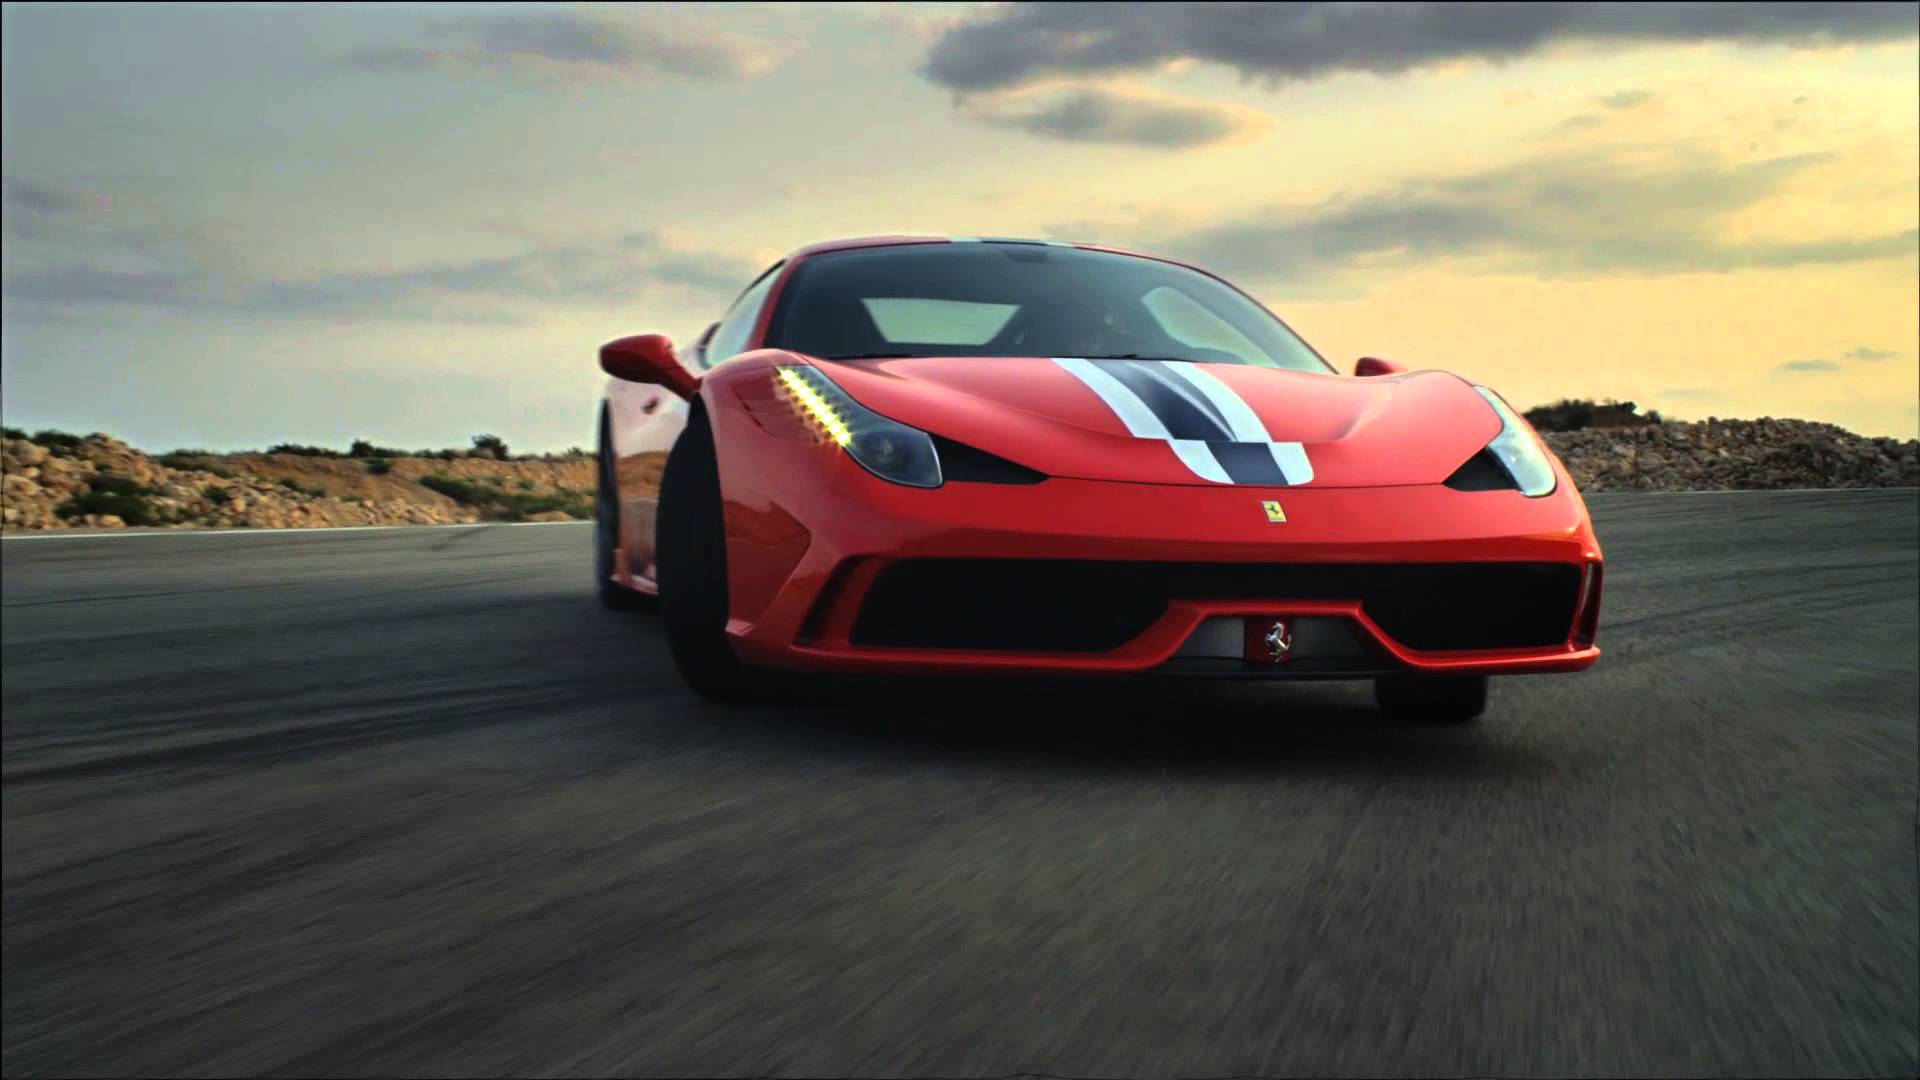 Superb Ferrari 458 Speciale Red Car Wallpaper Hd Desktop Ferrari 458 Speciale 1052043 Hd Wallpaper Backgrounds Download